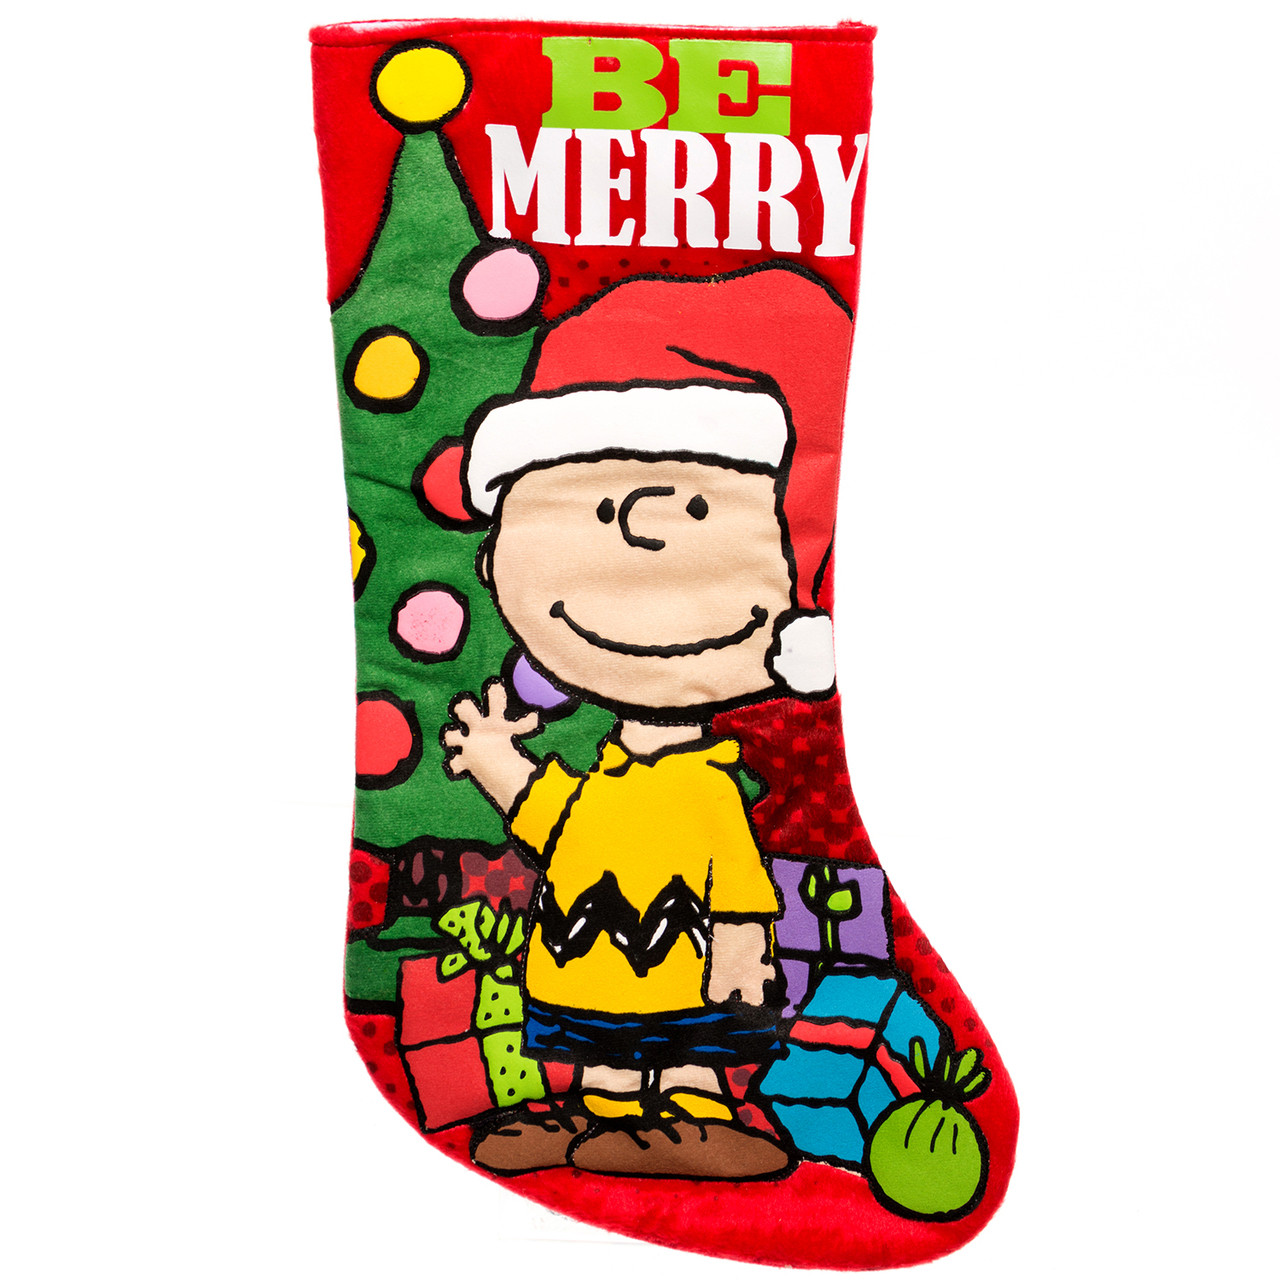 charlie brown and snoopy peanuts christmas stockings retrofestive ca